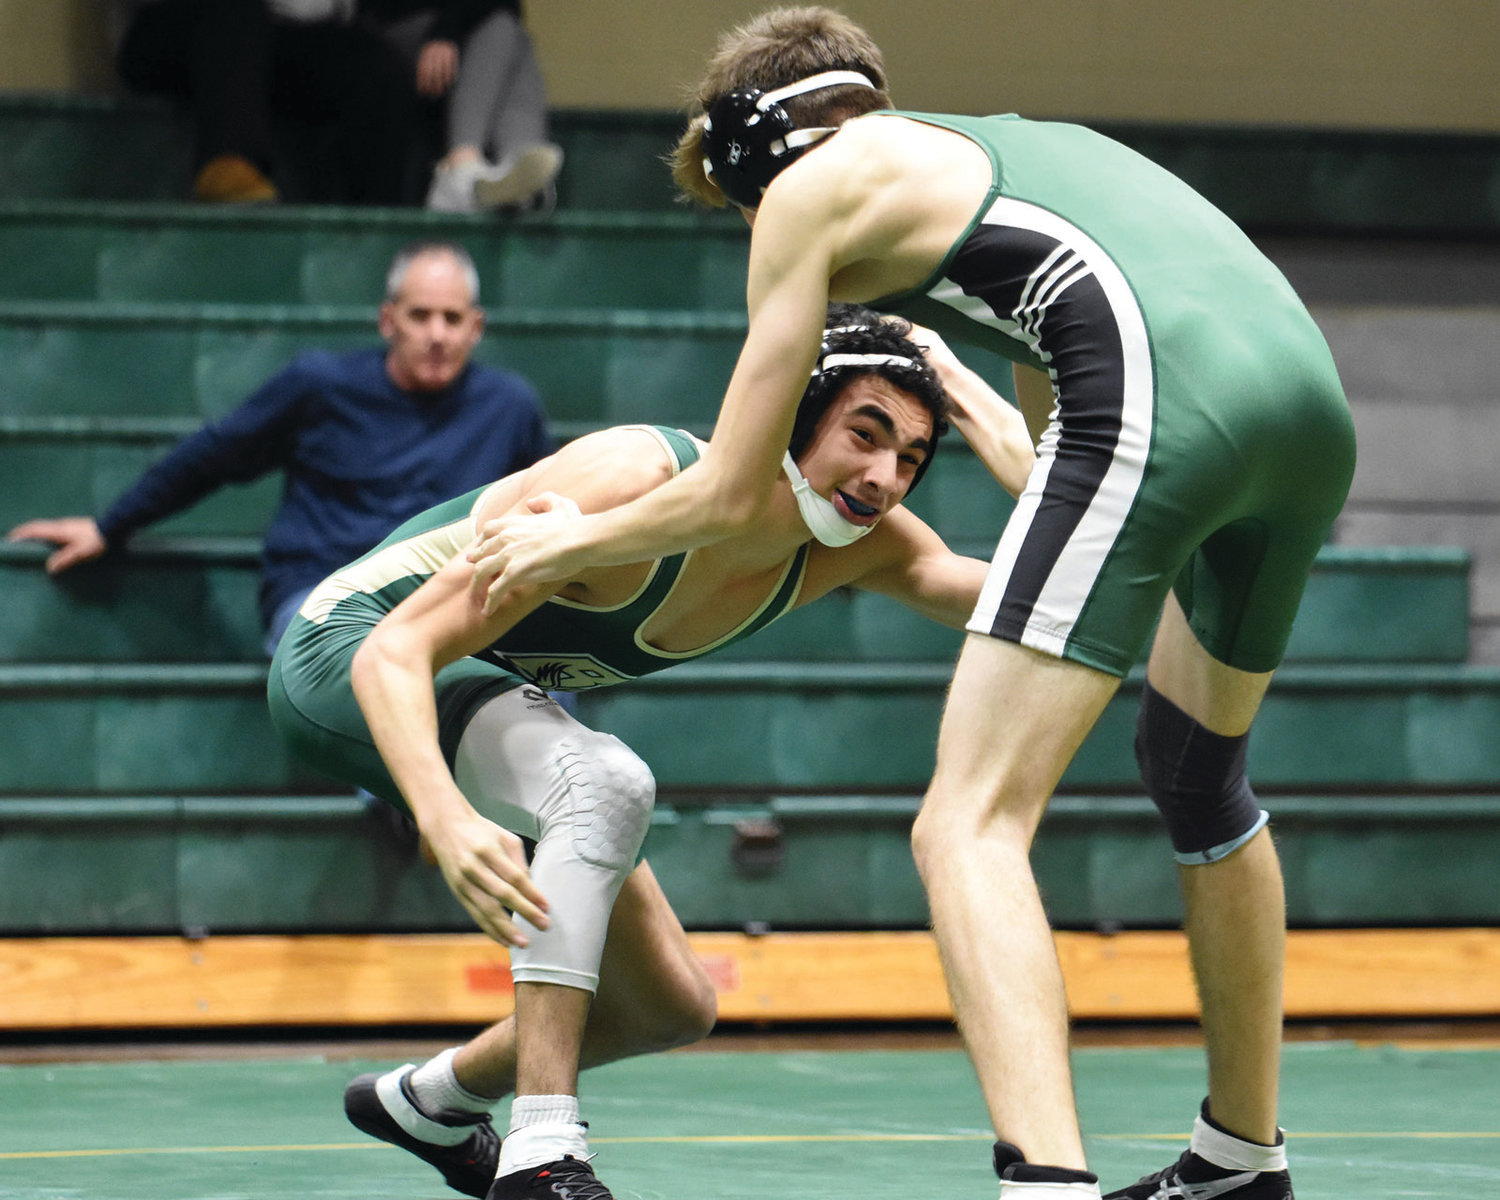 CLOSING THE DISTANCE: Bishop Hendricken's Isaiah Guerrero looks to clinch during a recent match.